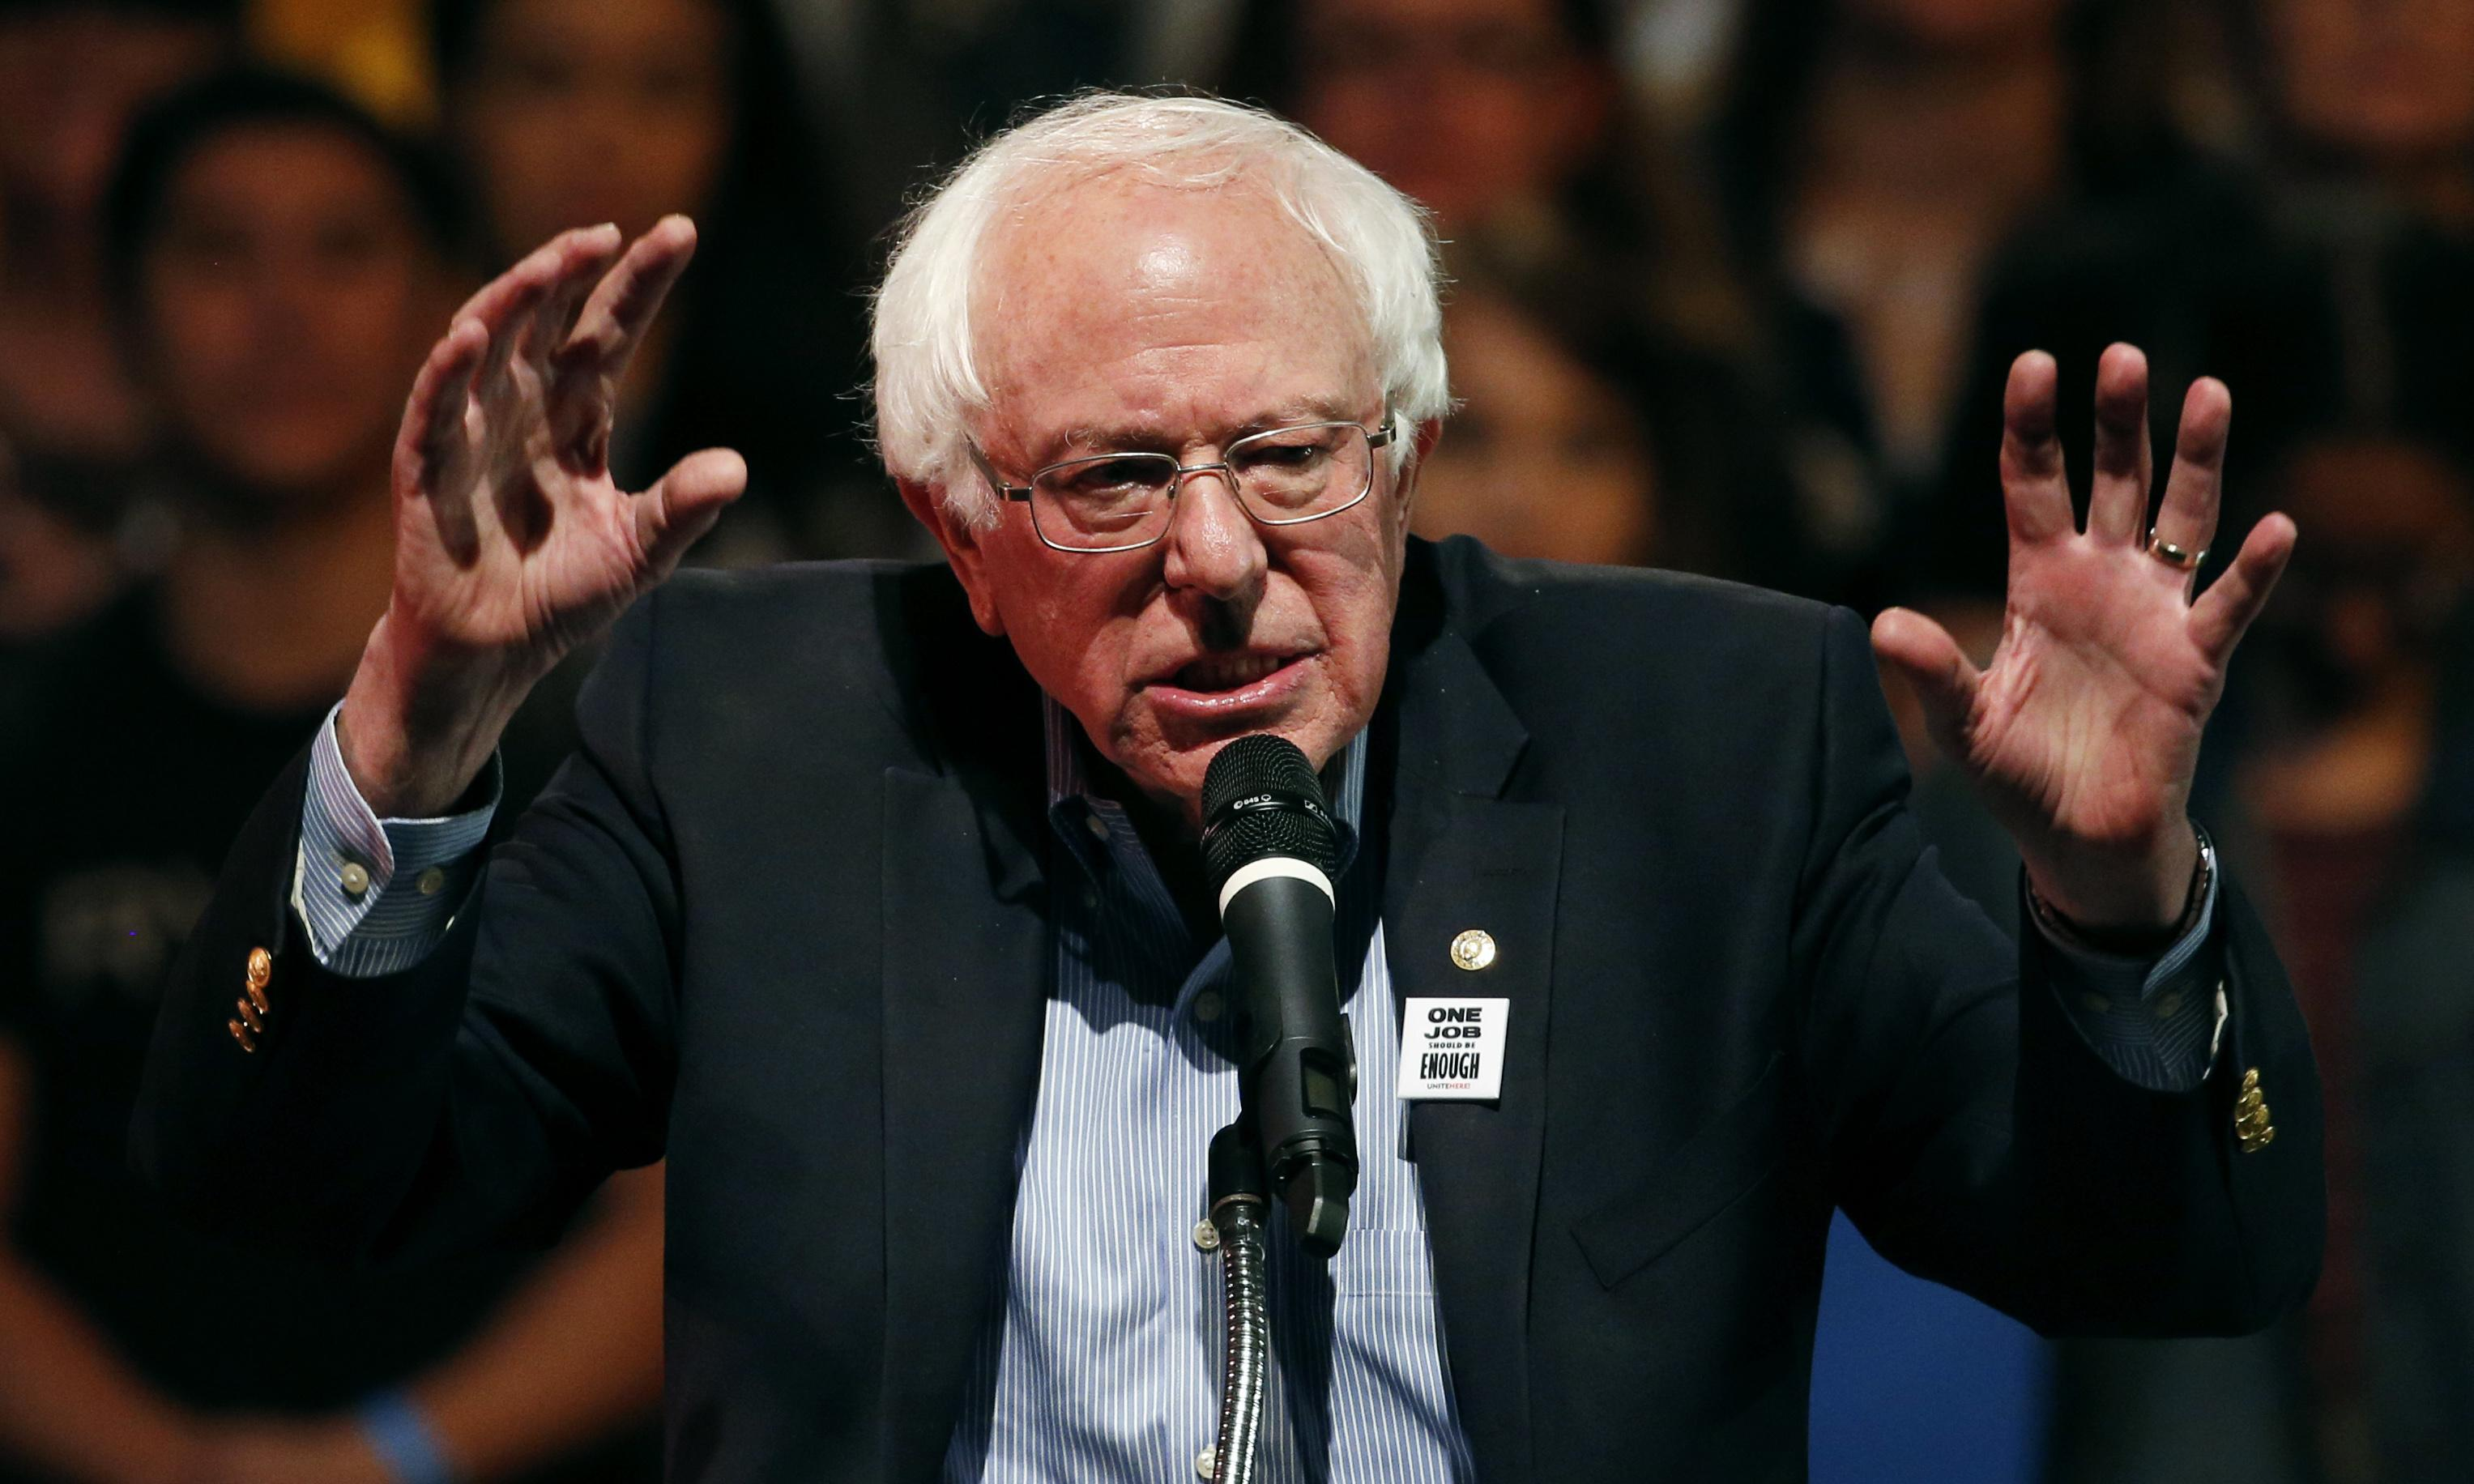 Bernie Sanders targets Walmart and takes aim at low wages and CEO